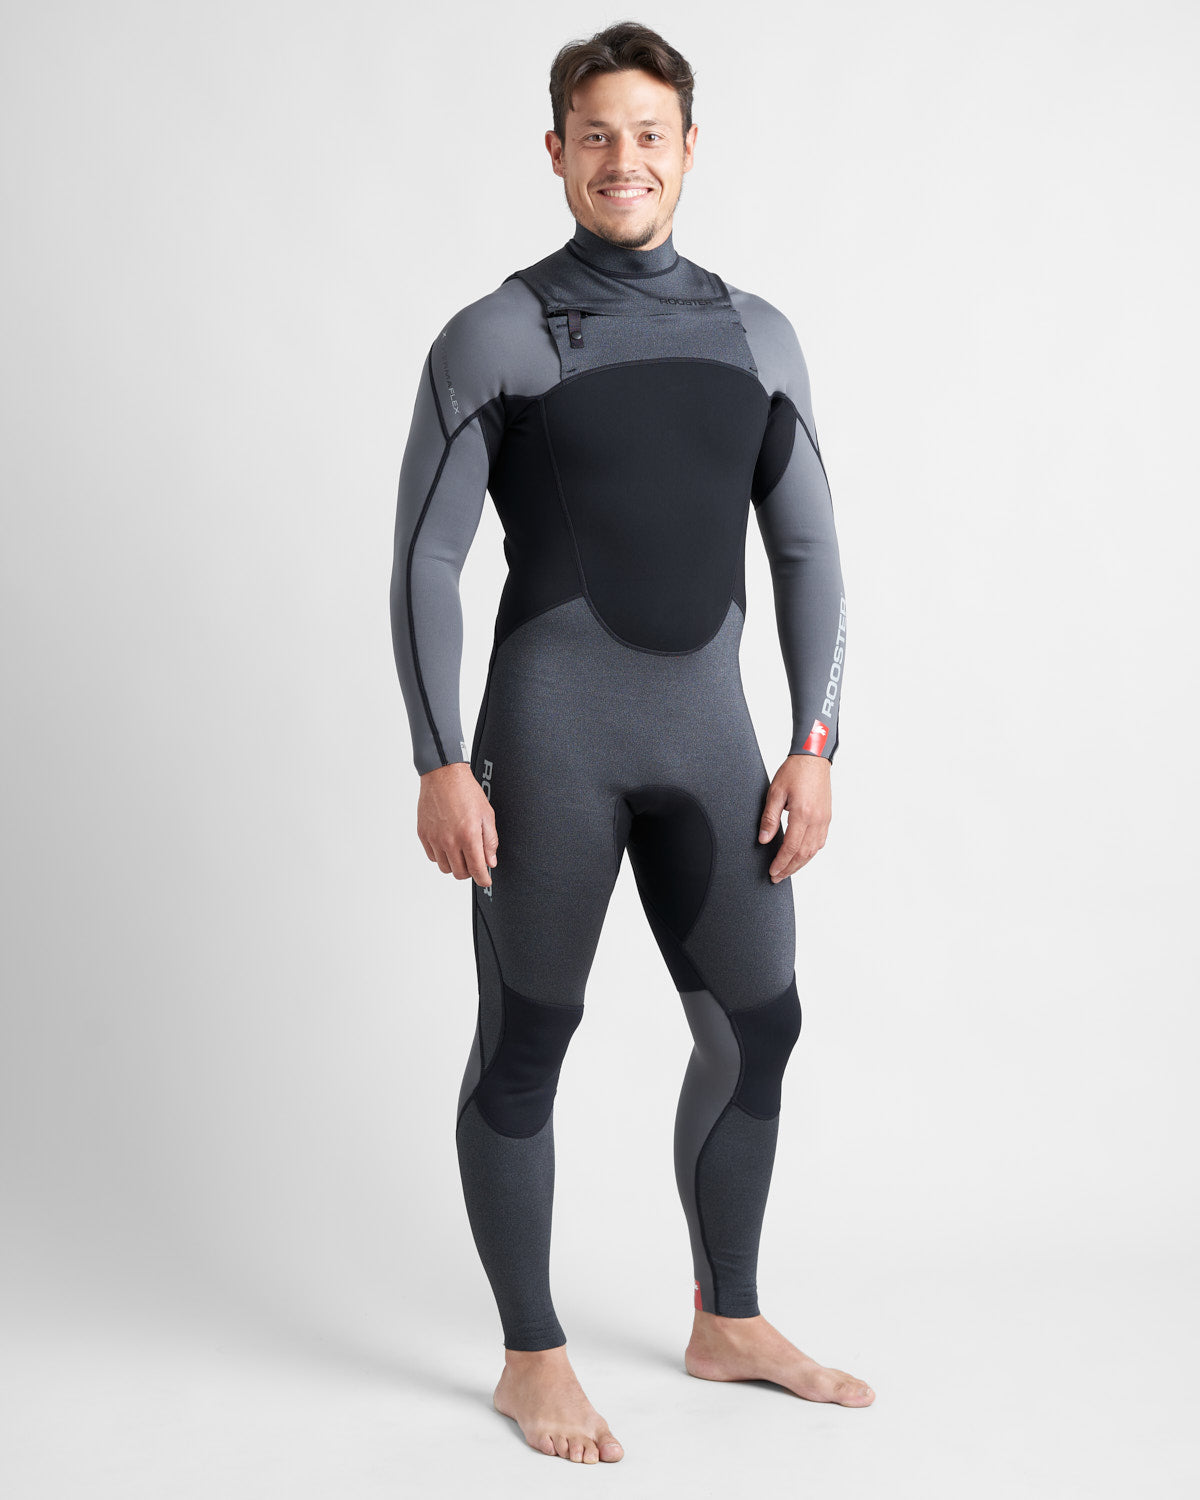 Image of ThermaFlex 3/2mm Full Length Chest-Zip Wetsuit